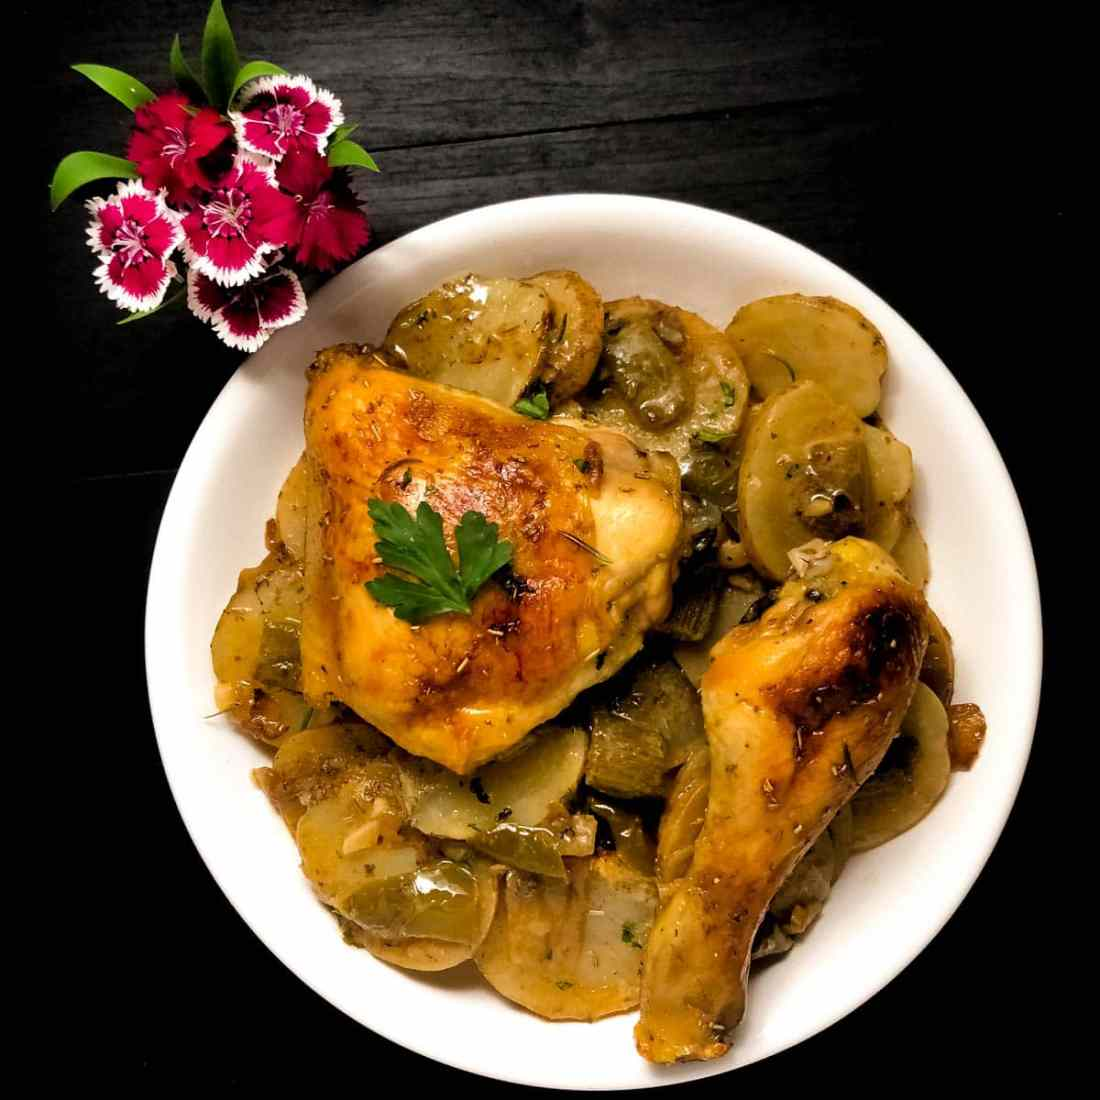 A white bowl filled with baked Cajun style rosemary lemon chicken and potatoes against a black background with hot pink flowers.